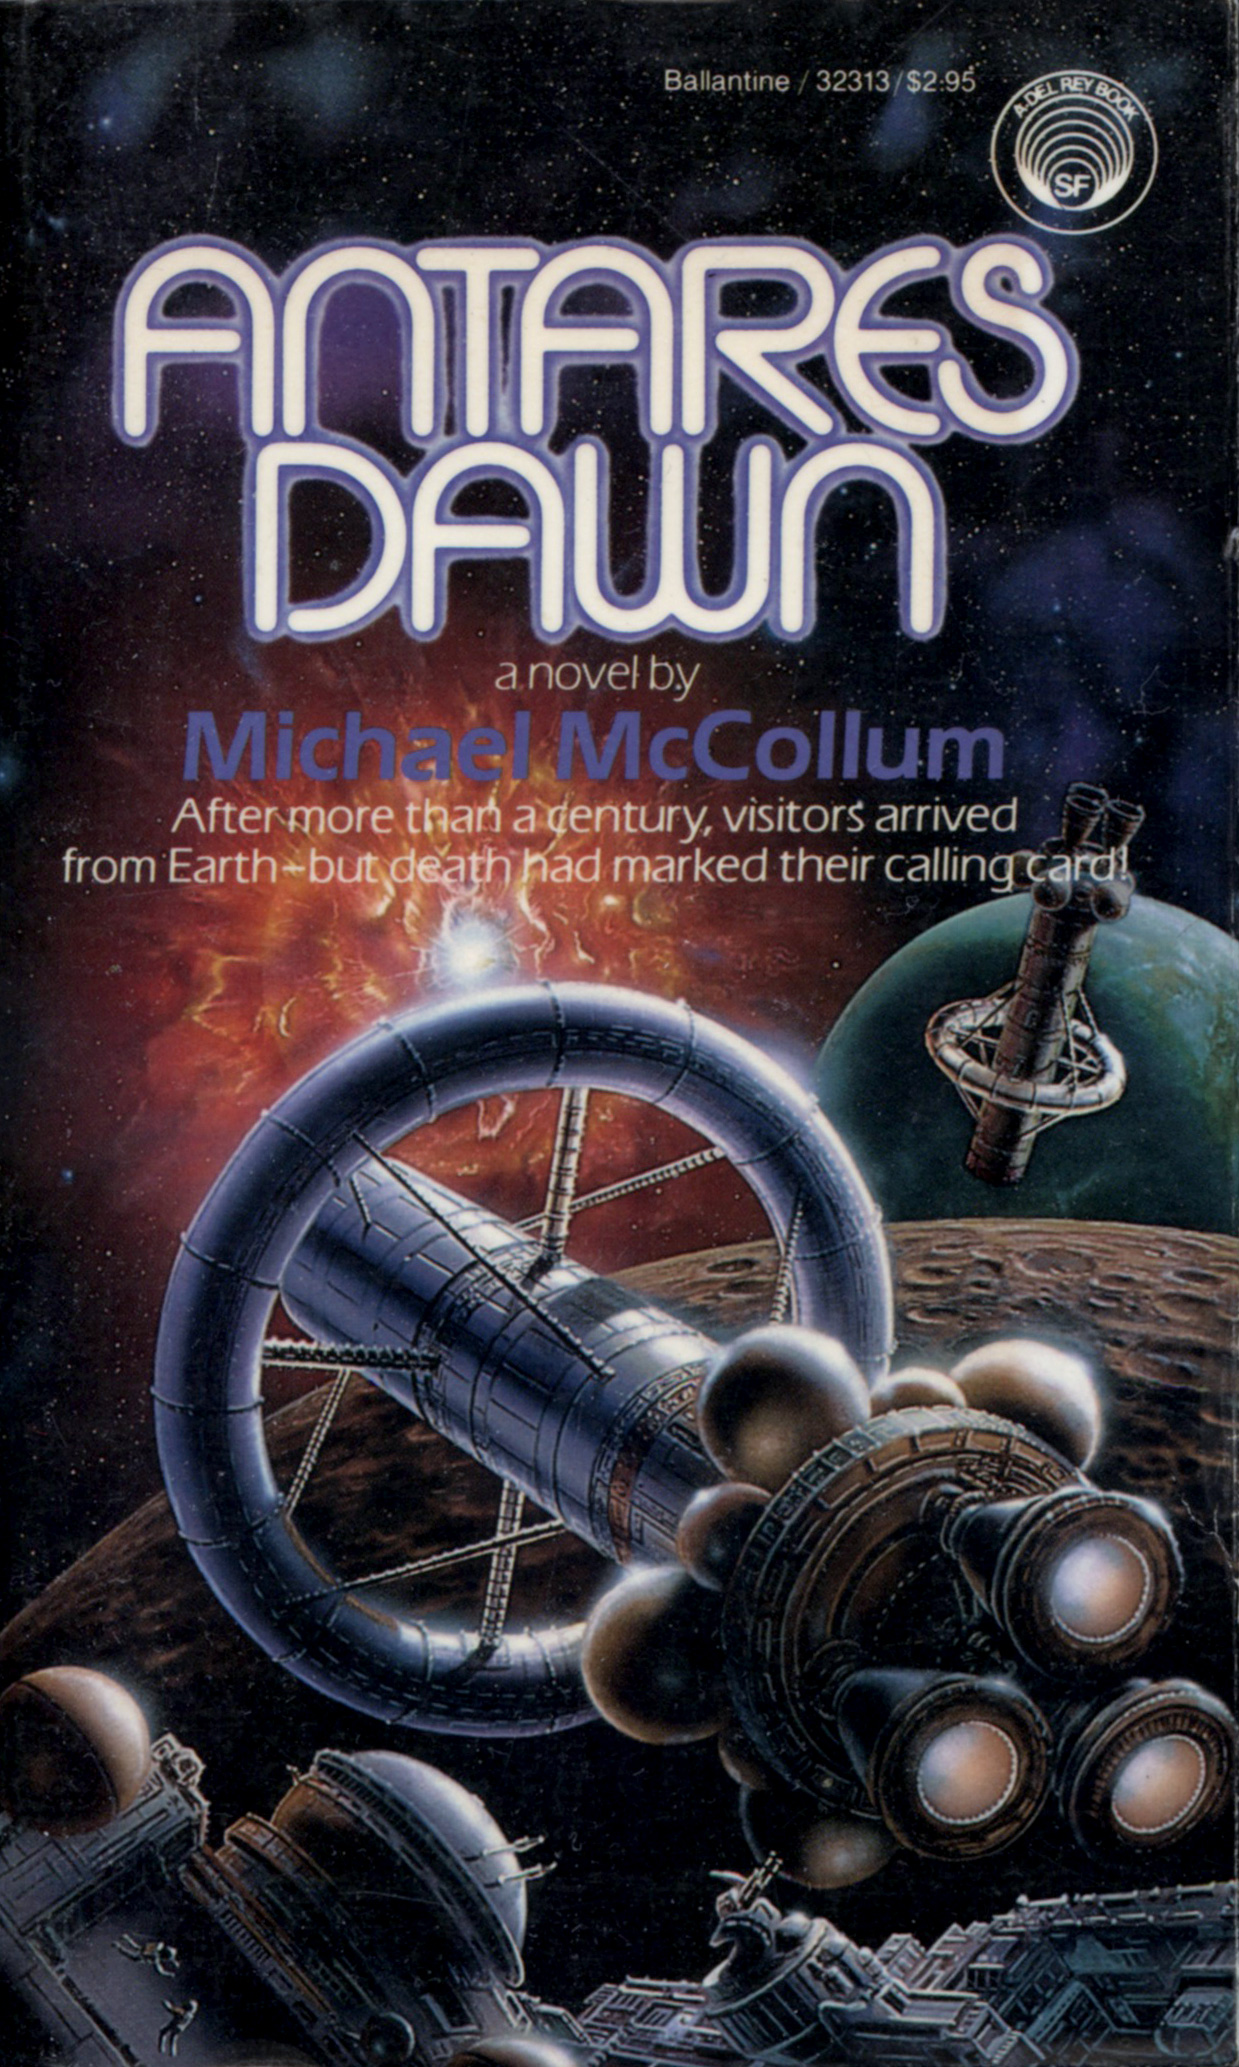 """Antares Dawn"" by Michael McCollum."